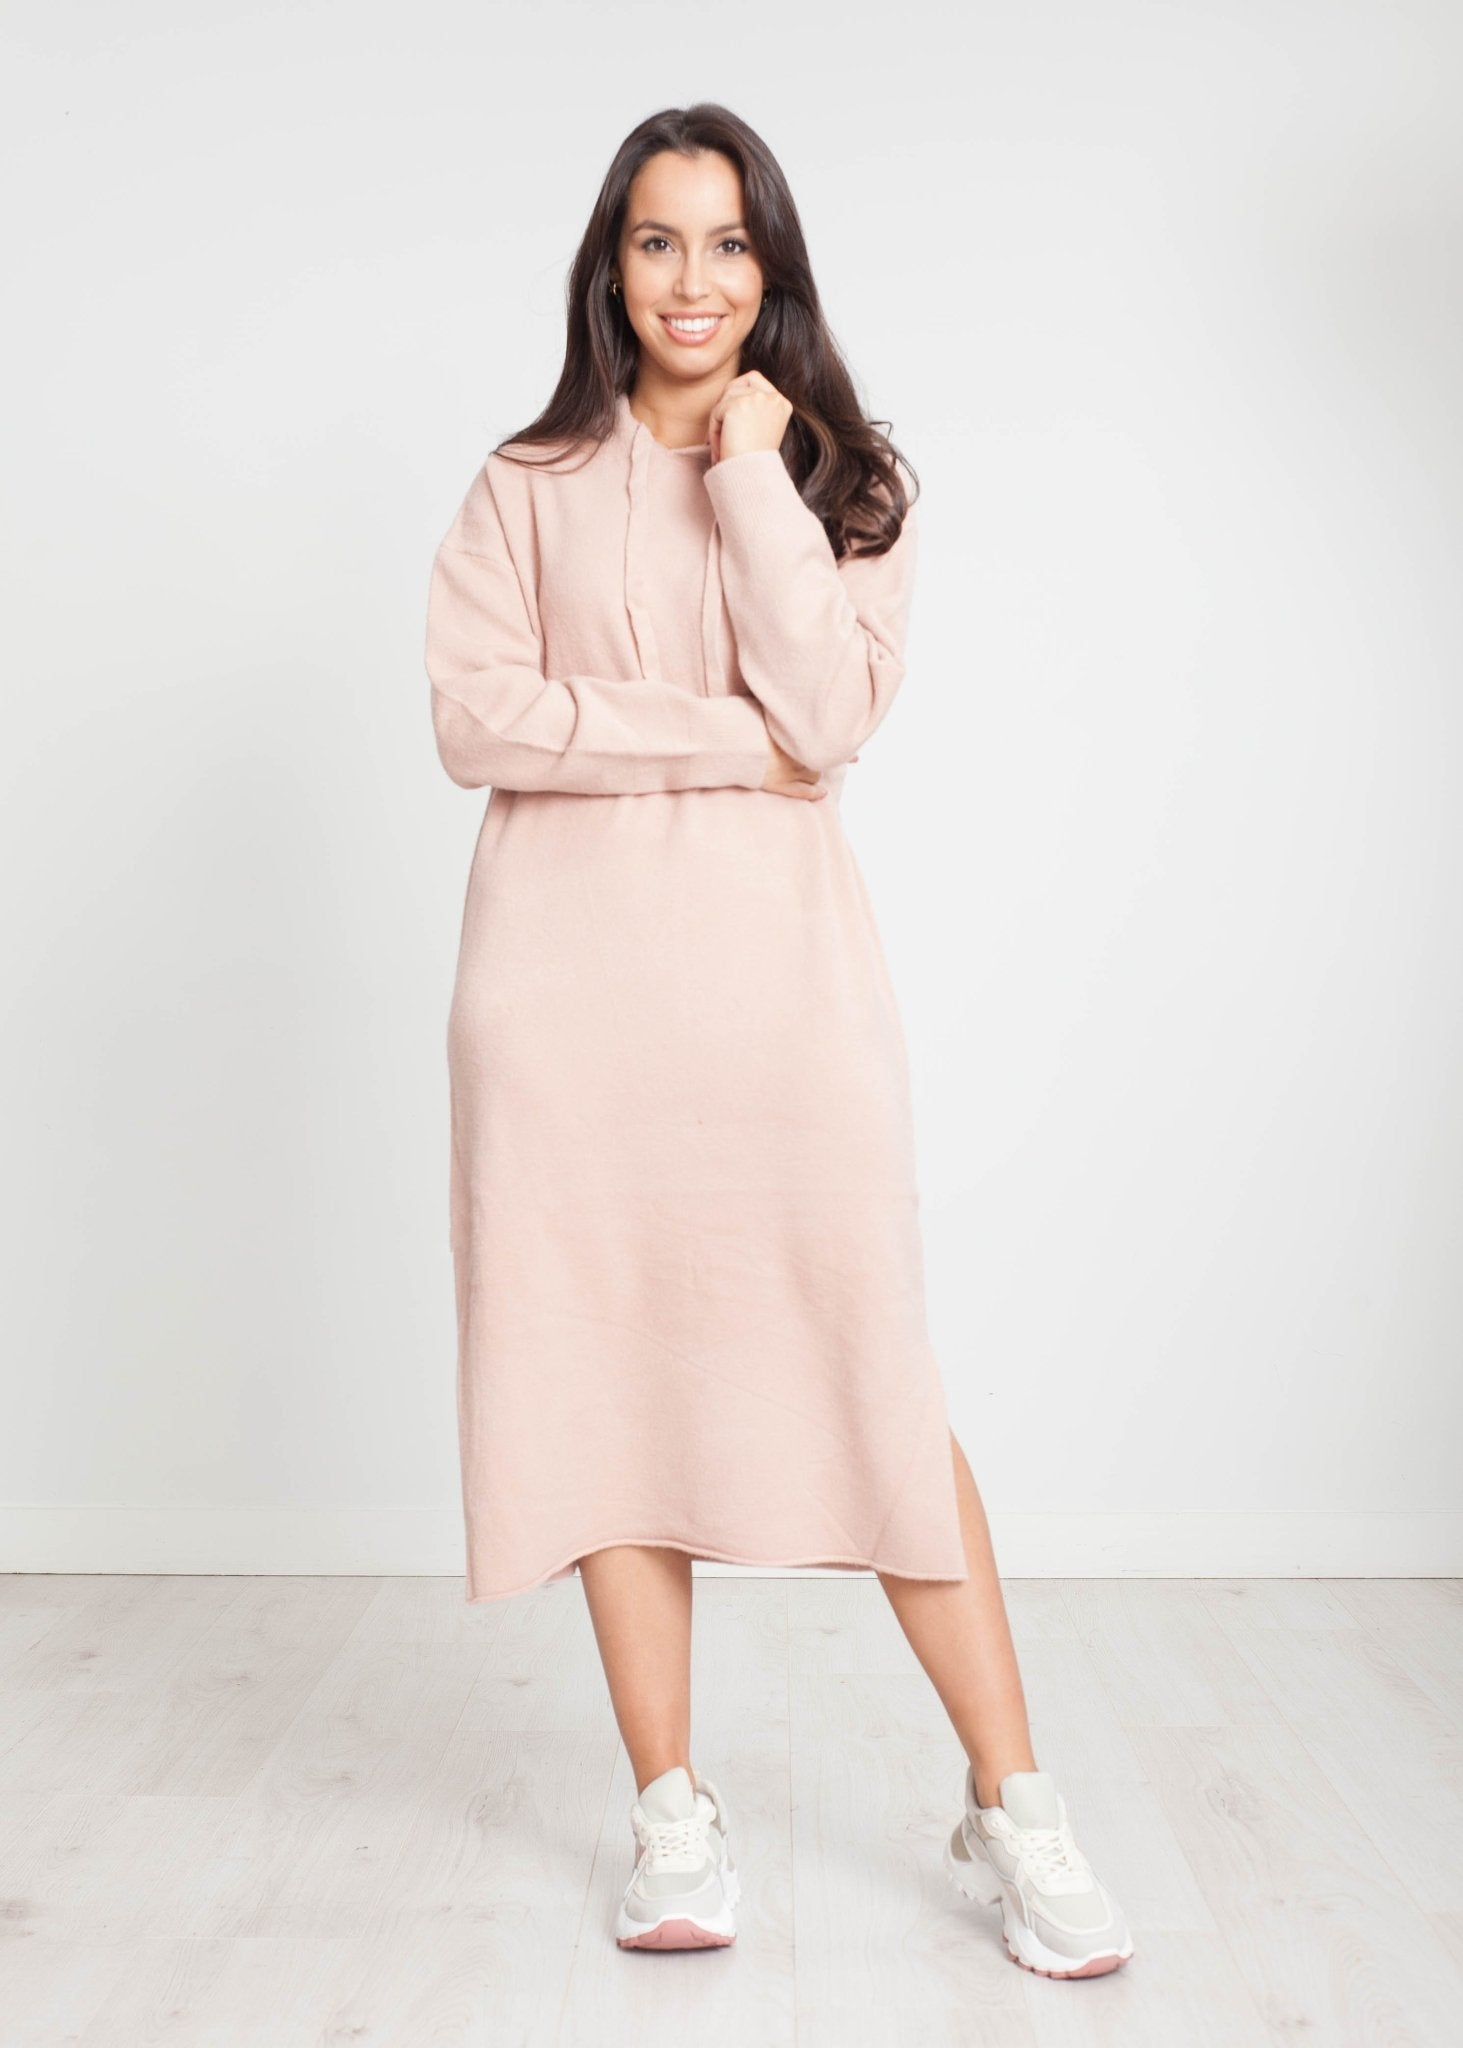 Jayme Knit Hoodie Dress In Blush - The Walk in Wardrobe